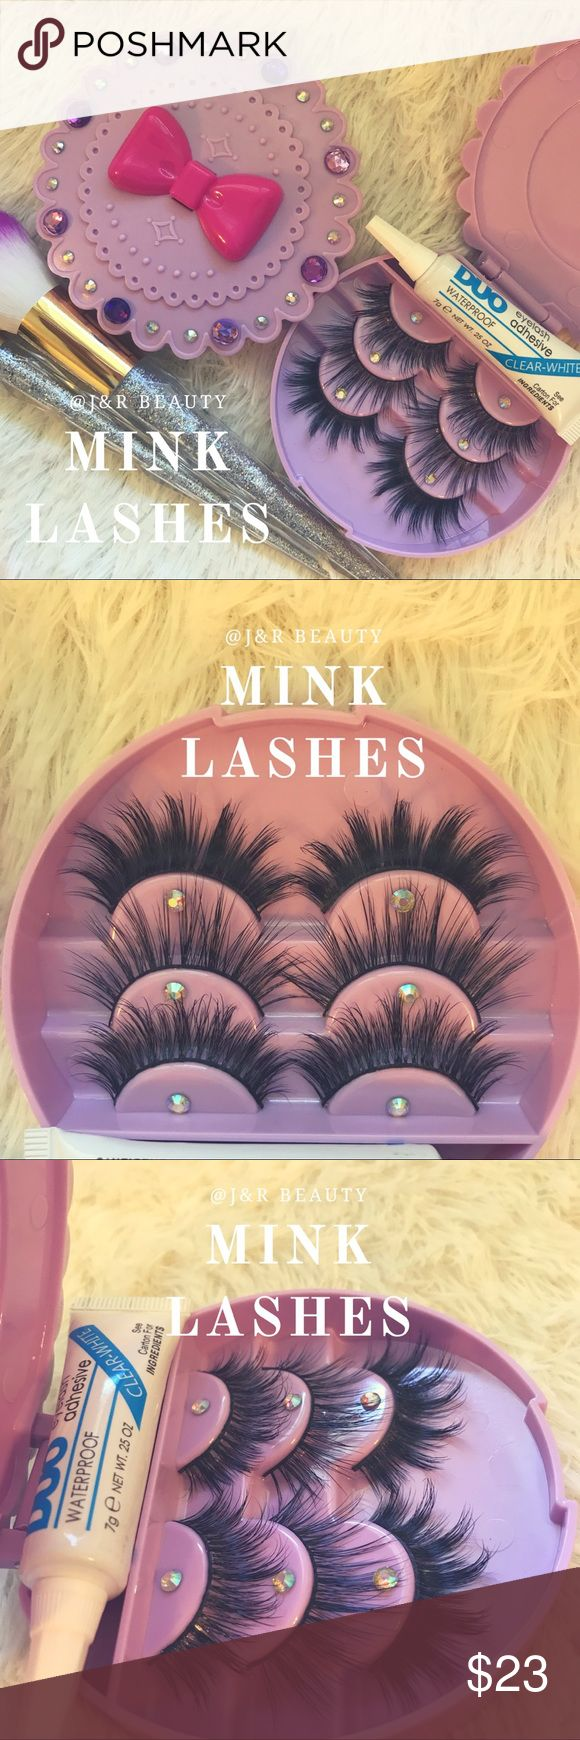 Mink lashes + Case+ Glue All brand new include ✅3 kinds of mink lashes ✅eyelash case ( available in white, mint, pink) ✅waterproof glue Add on +$2 applicator Only 1 available ❣️ Case can be customized ✨ Message me if you like to have a different one ⭐️ # tags Iconic, mink, red cherry eyelashes, house of lashes, doll, kawaii, case, full, natural, Koko, Ardell, wispies, Demi , Makeup Makeup False Eyelashes